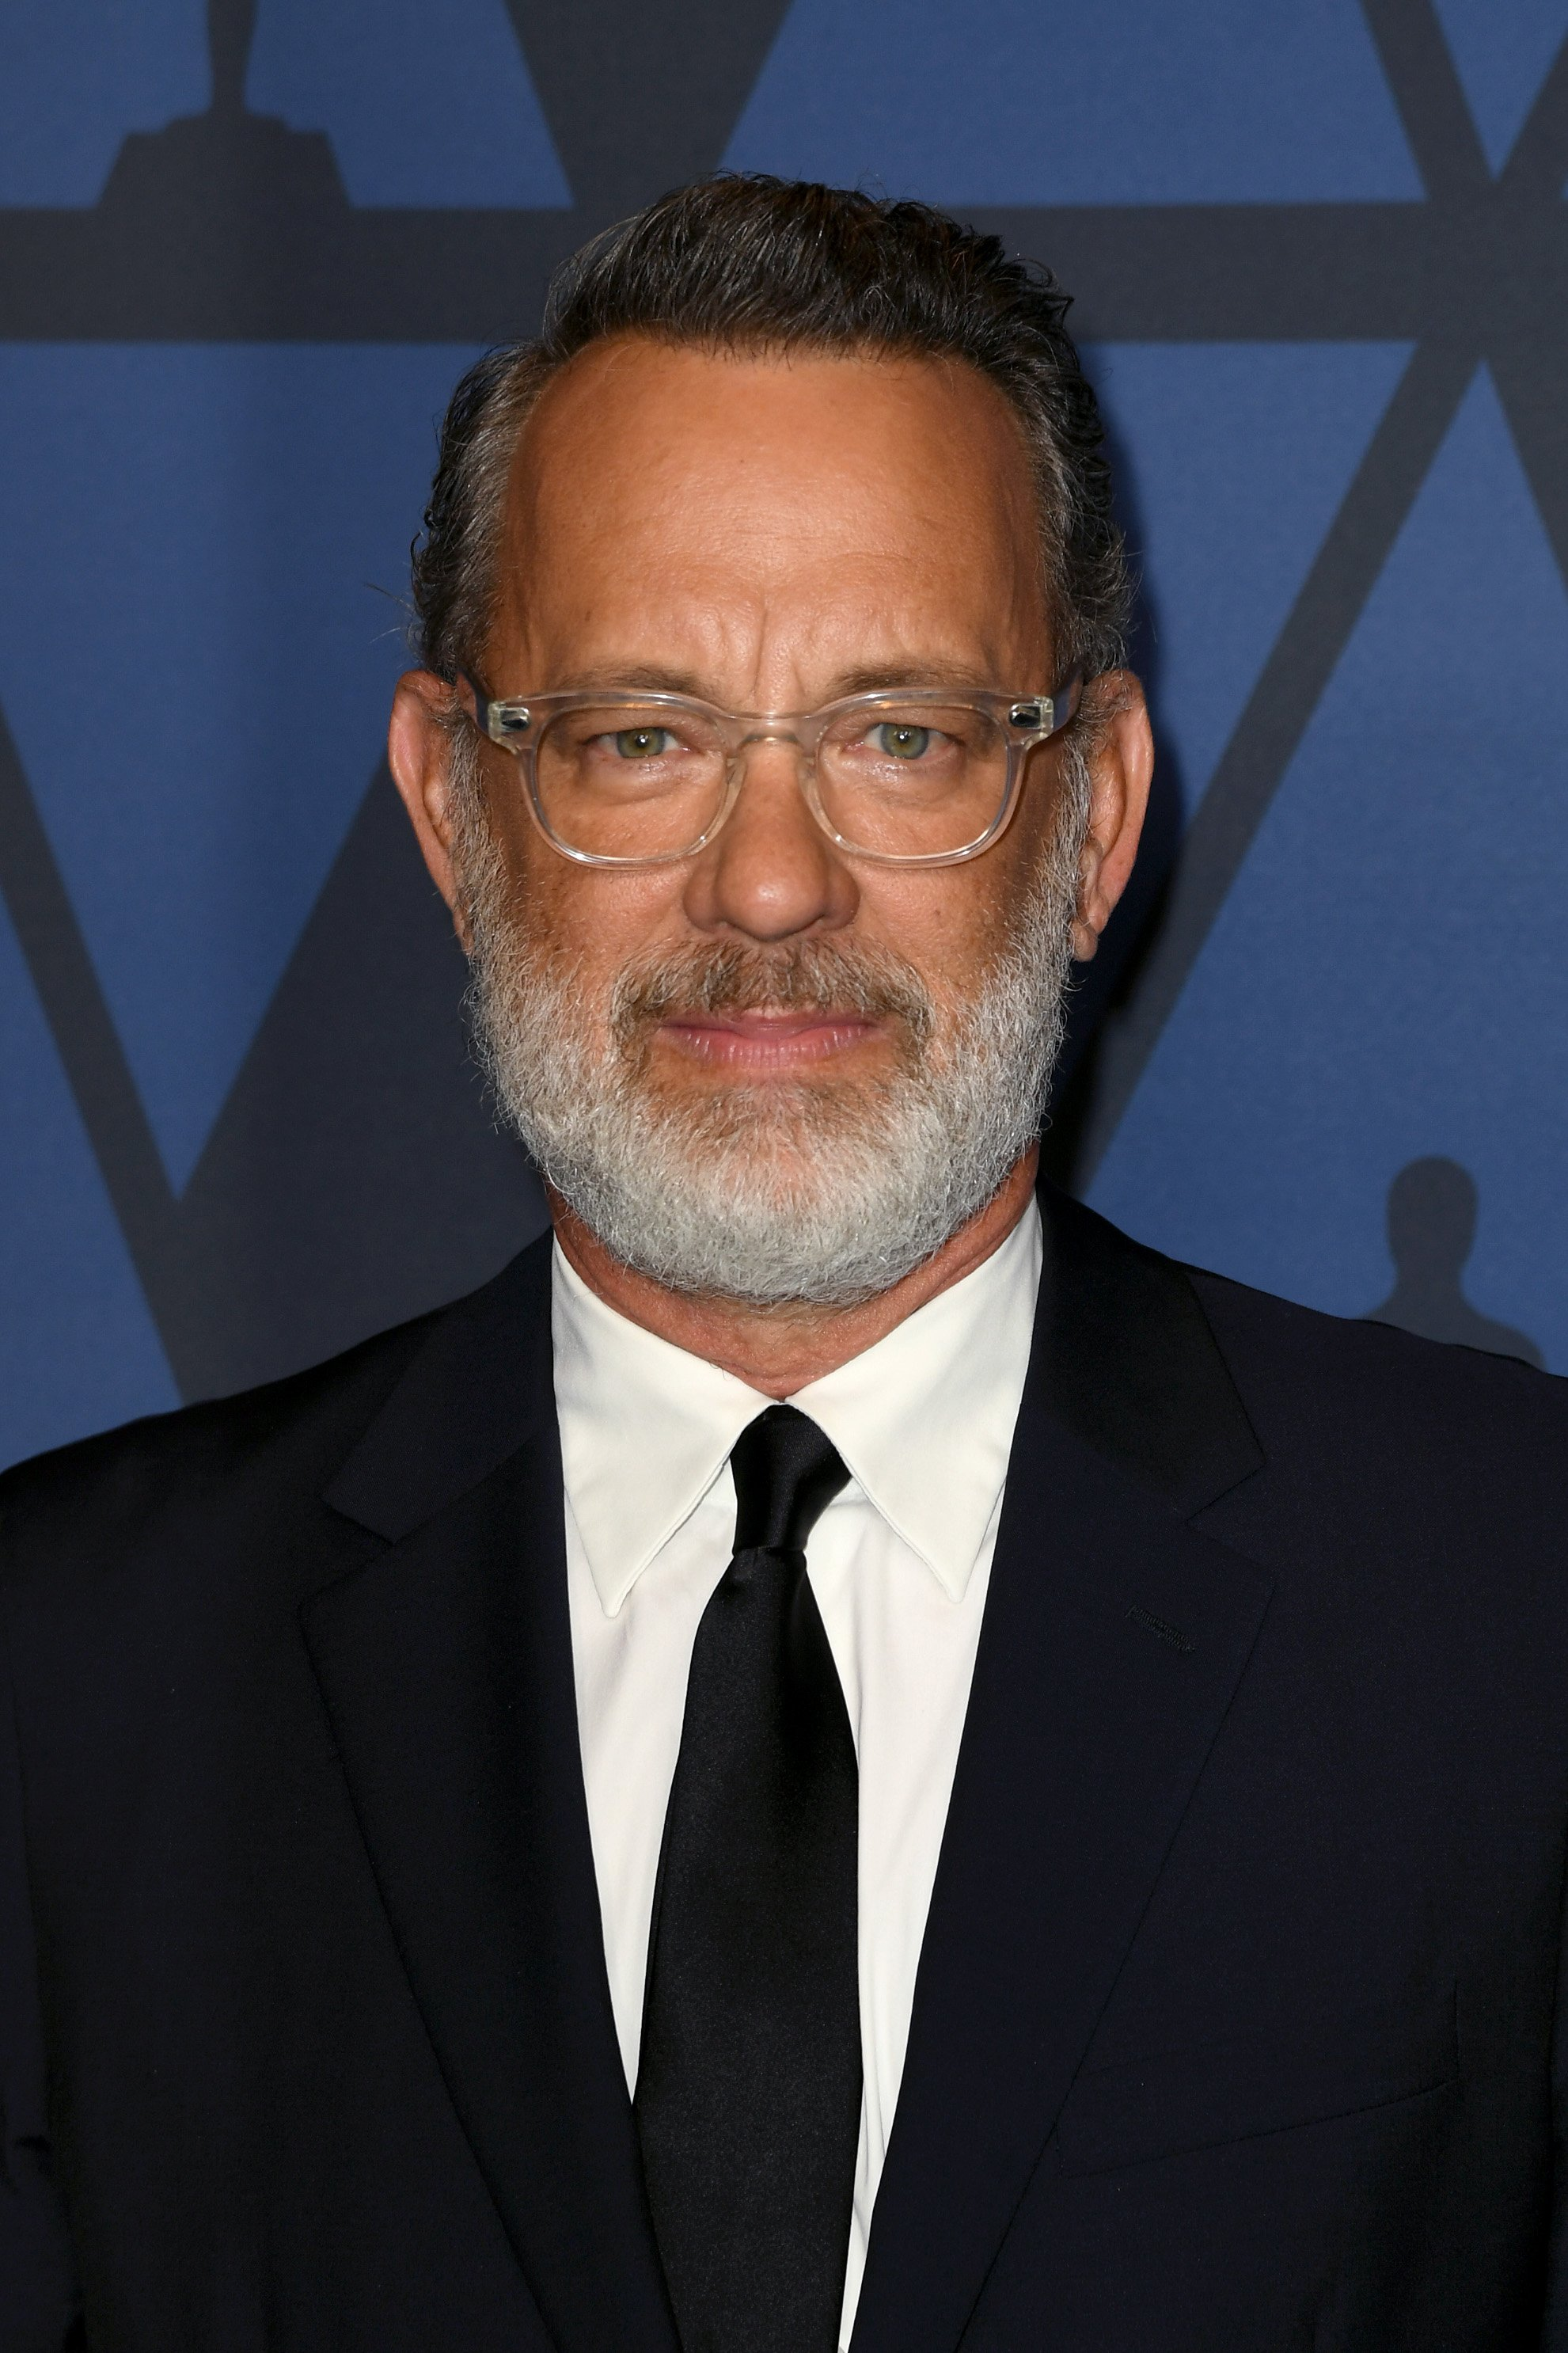 Tom Hanks at the Academy Of Motion Picture Arts And Sciences' 11th Annual Governors Awards | Source: Getty Images